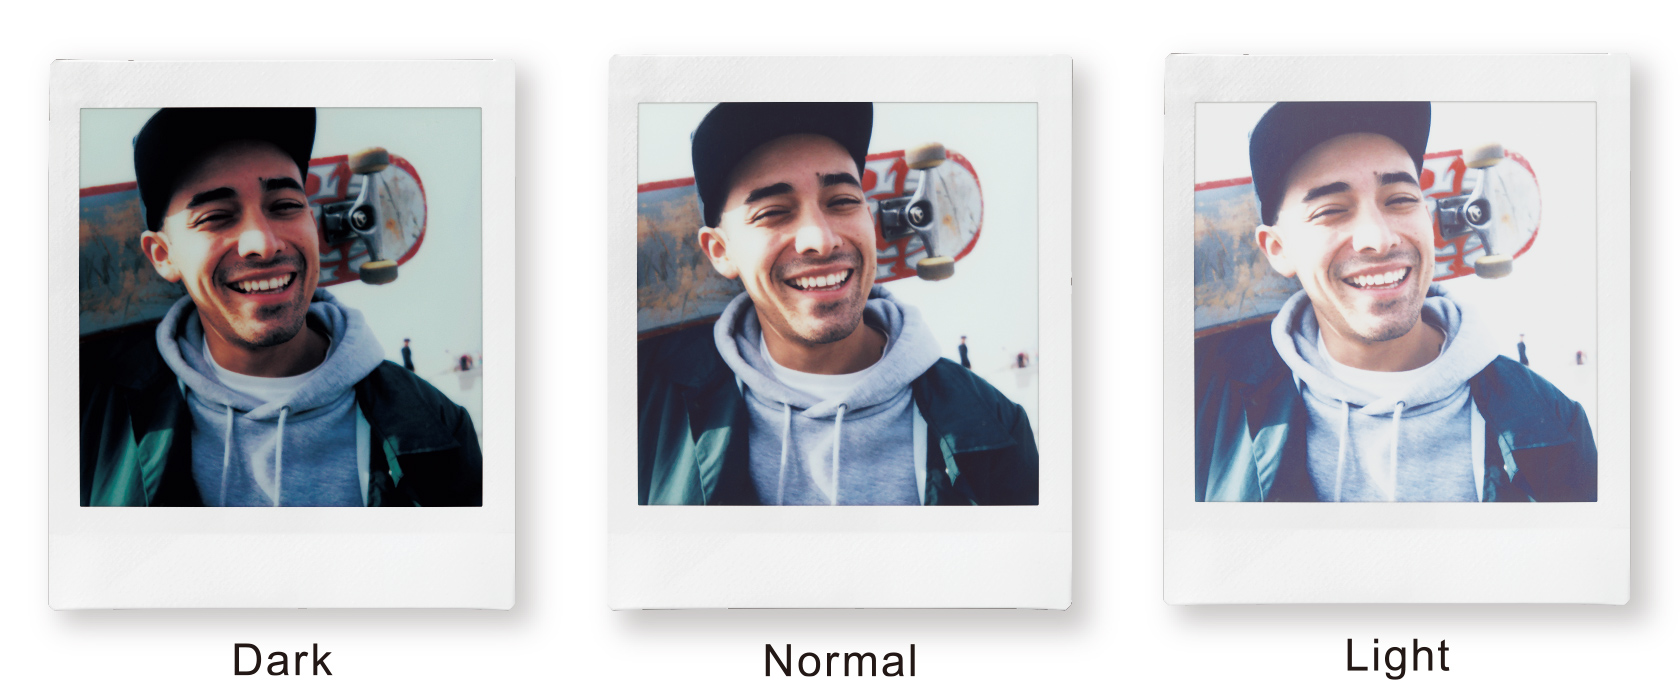 [photo] 3 different sample photos of a man smiling showing the light/dark mode feature on the Instax SQUARE SQ6